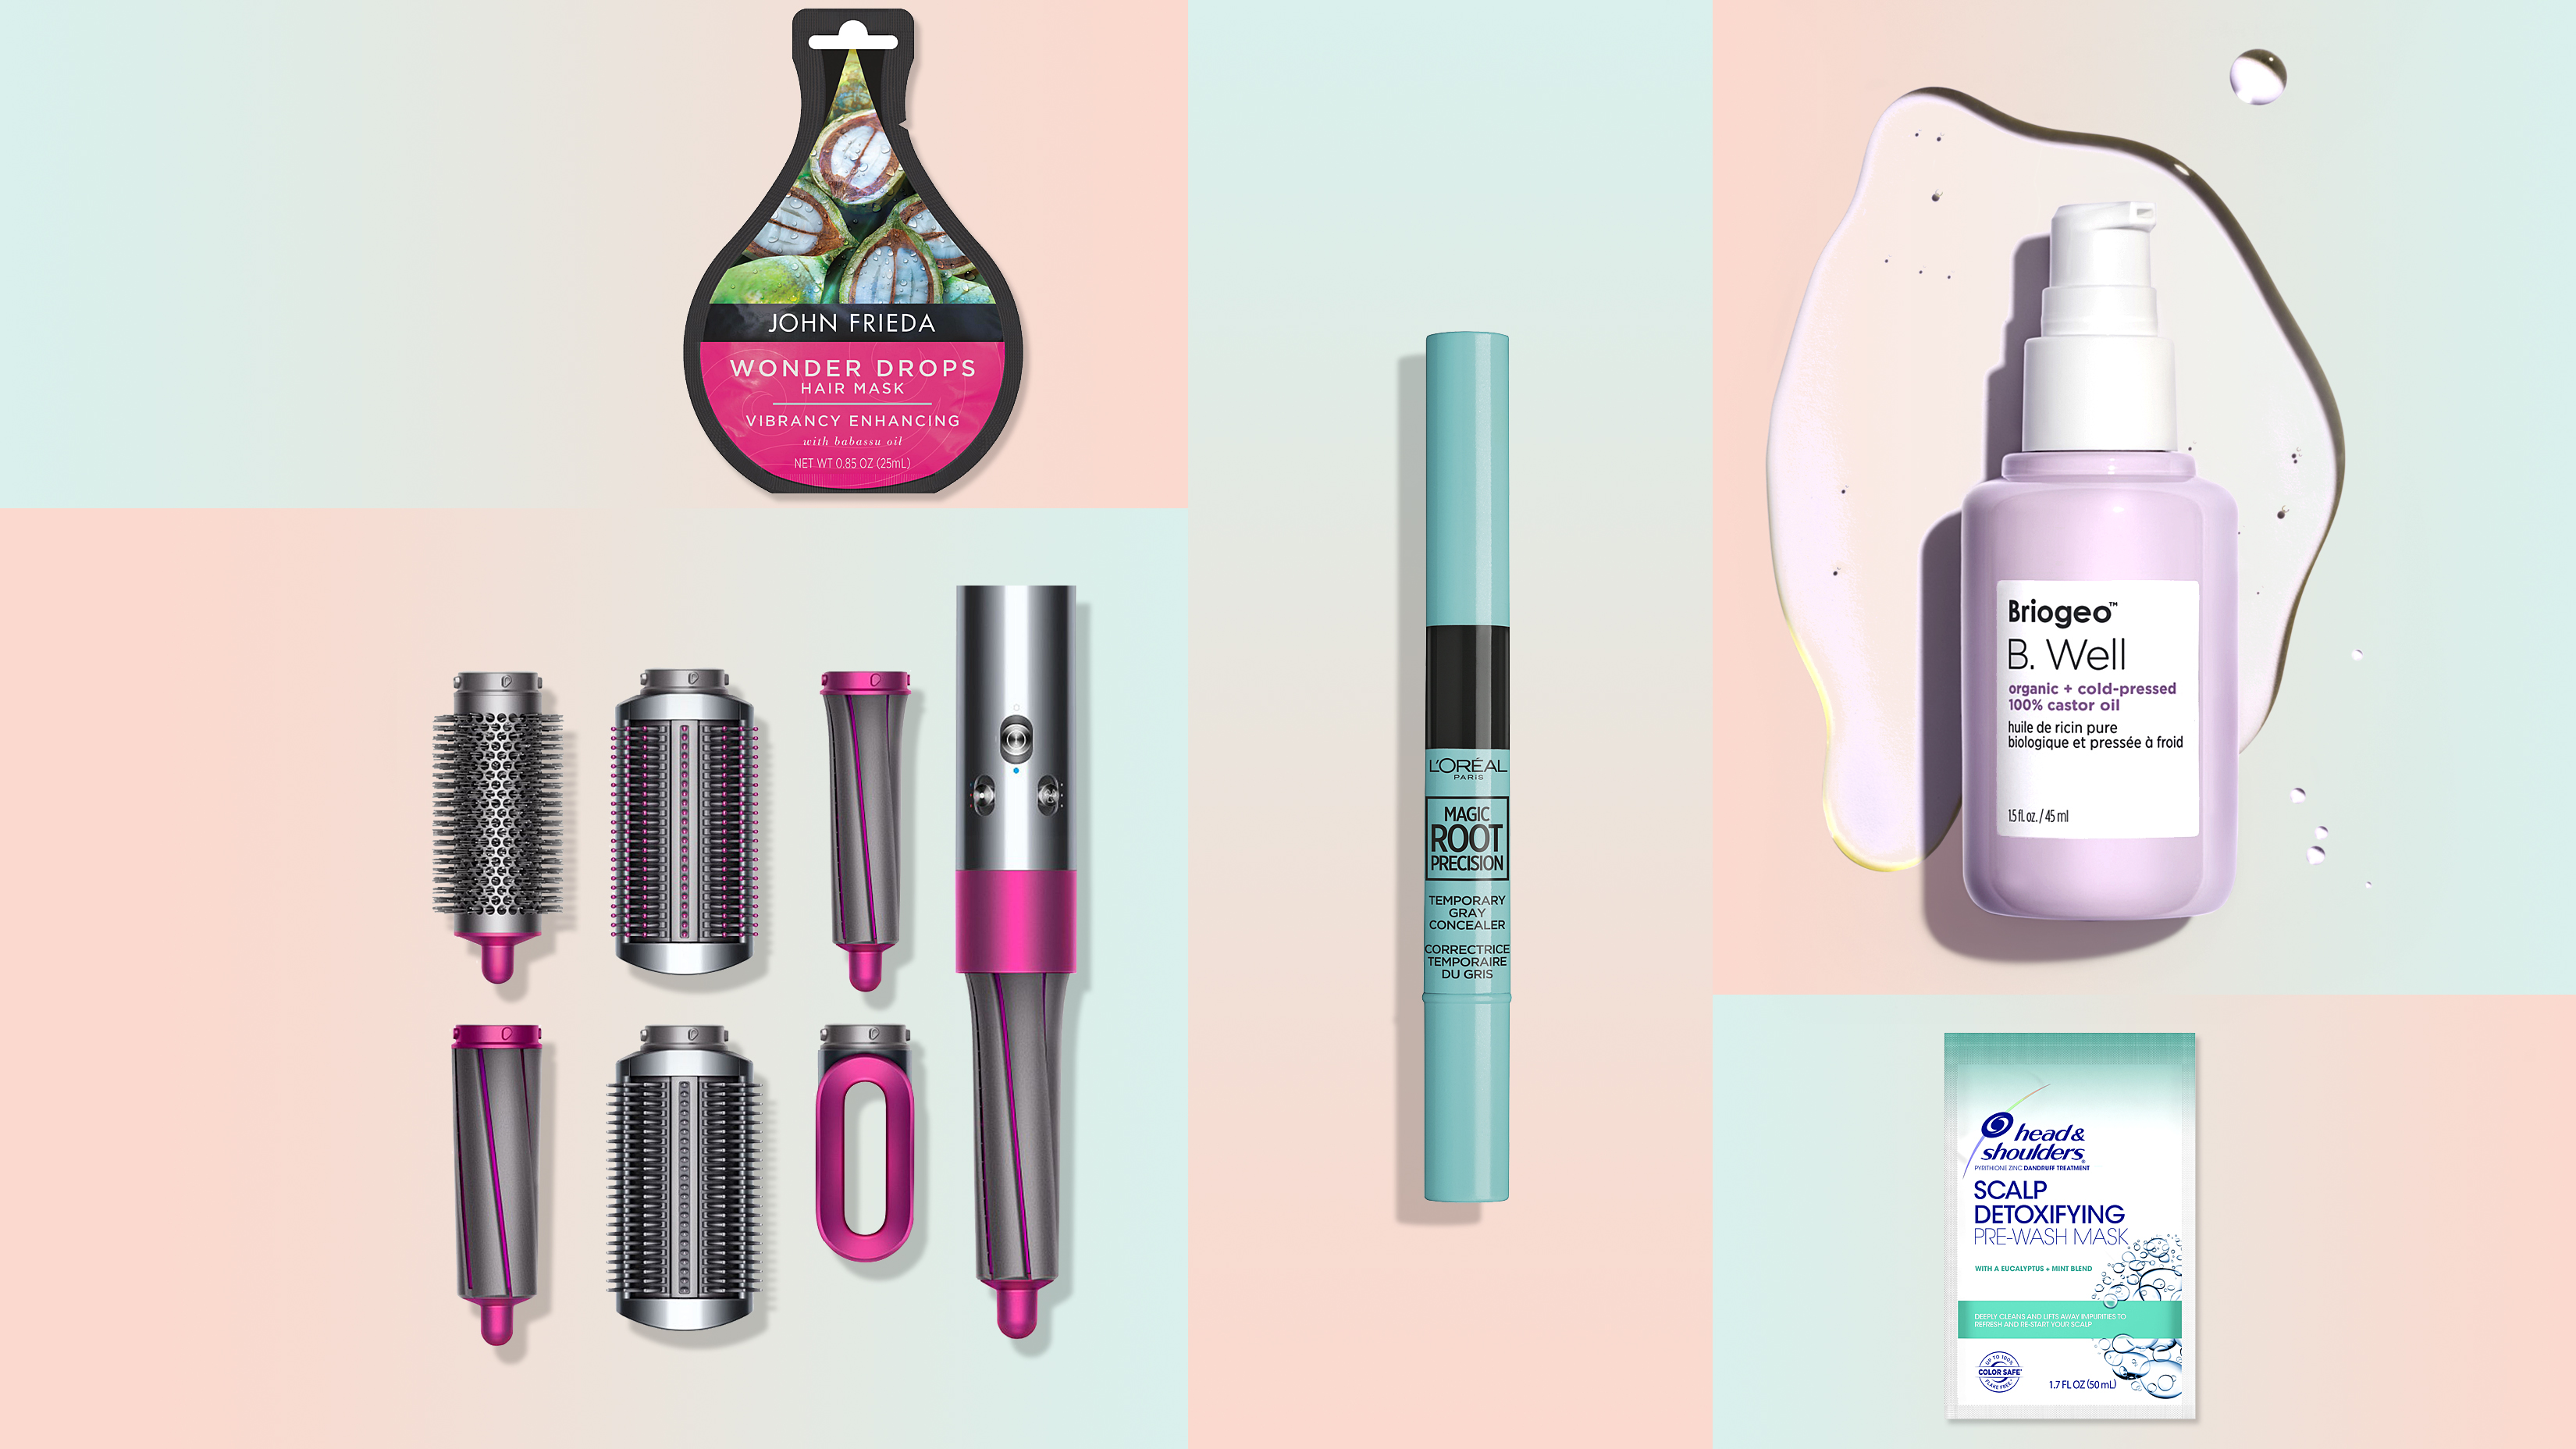 Health Beauty Awards: The 12 Holy Grail Hair Products of 2019